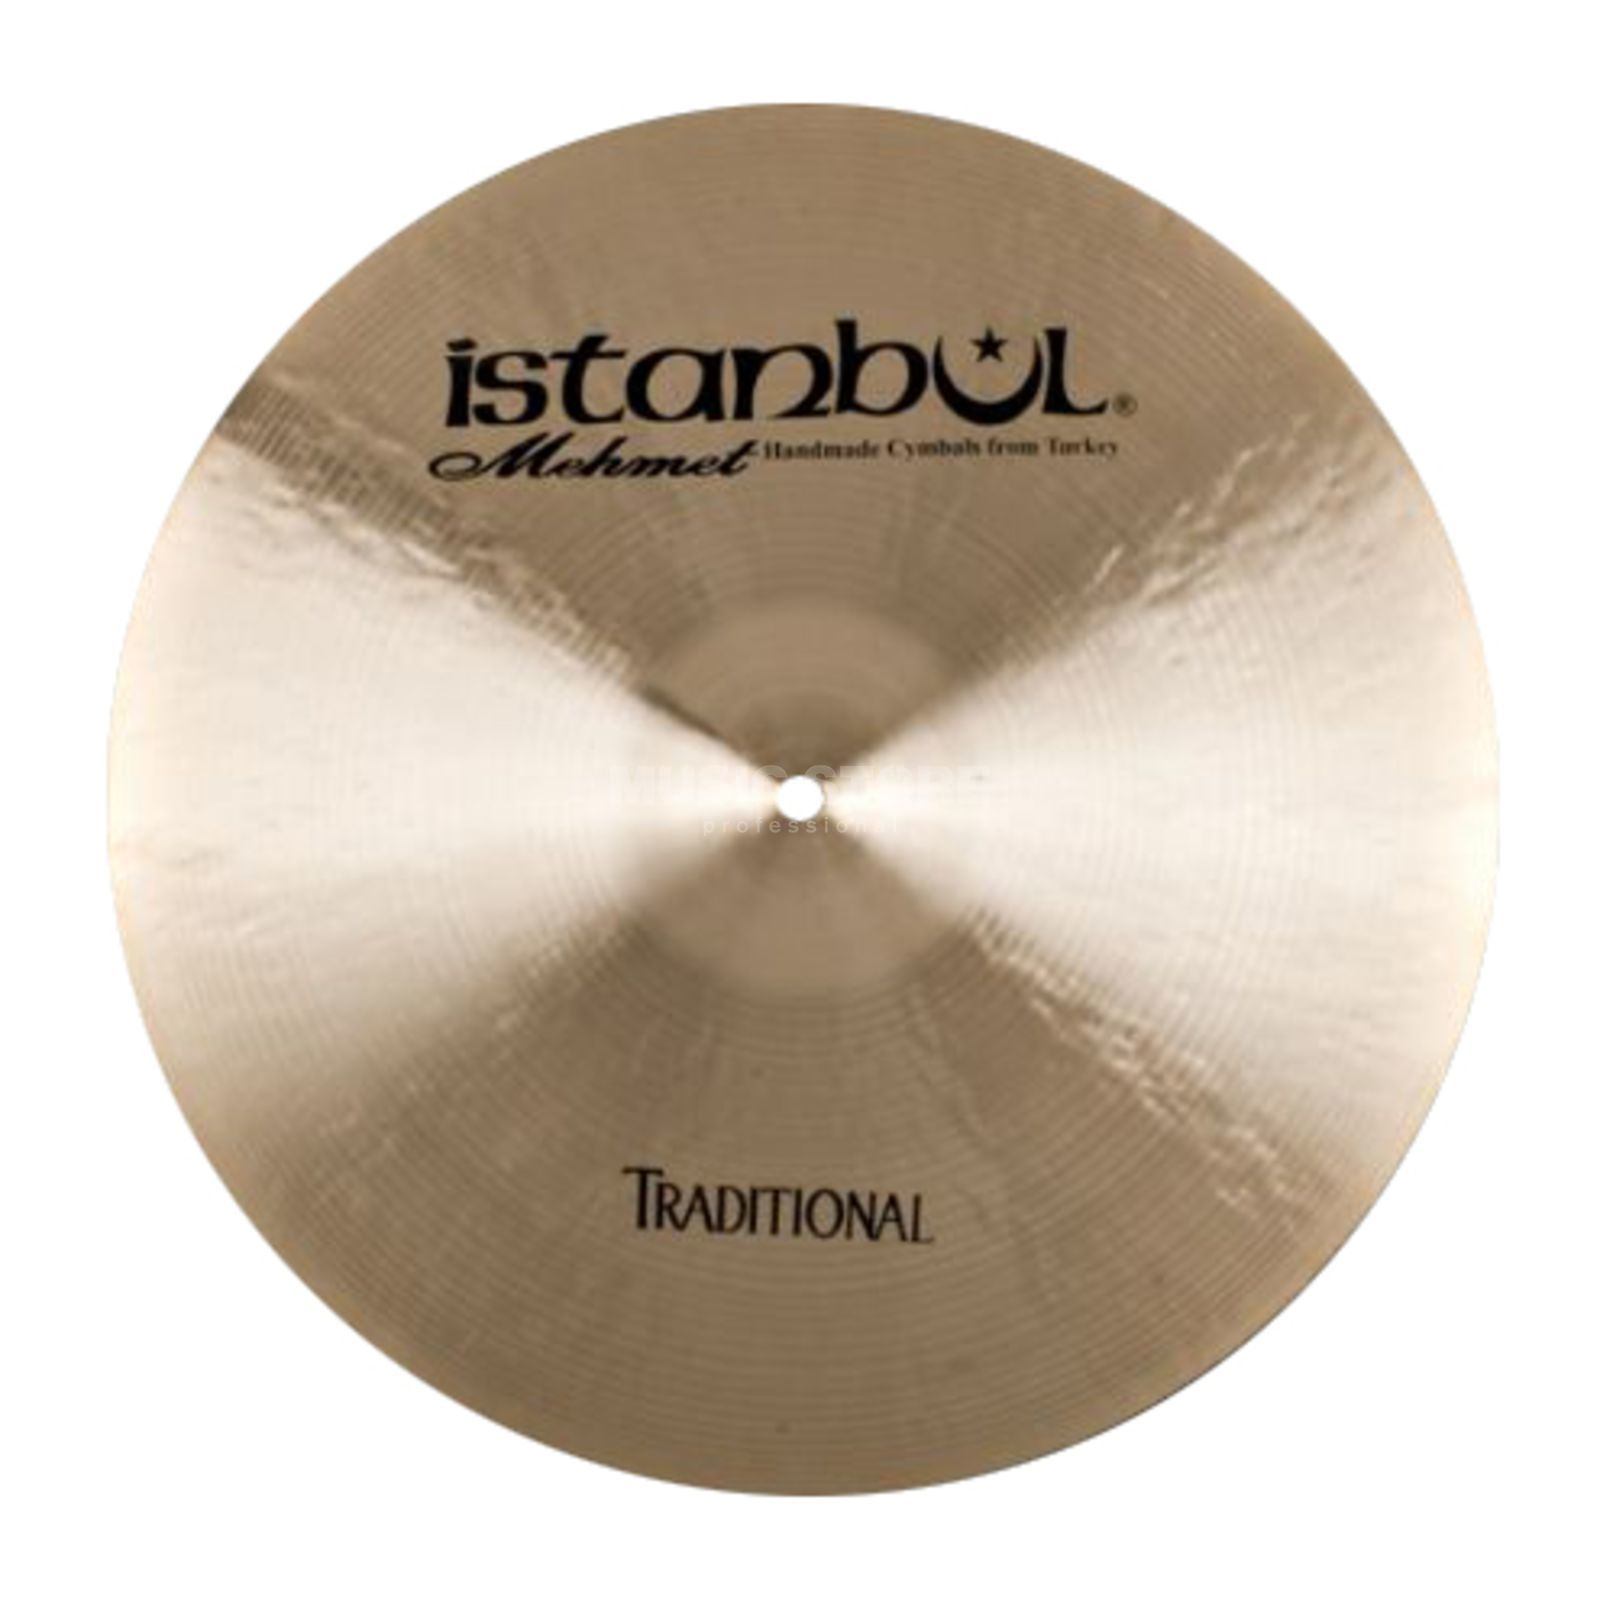 "Istanbul Traditional Thin Crash 16"", CTH17 Zdjęcie produktu"